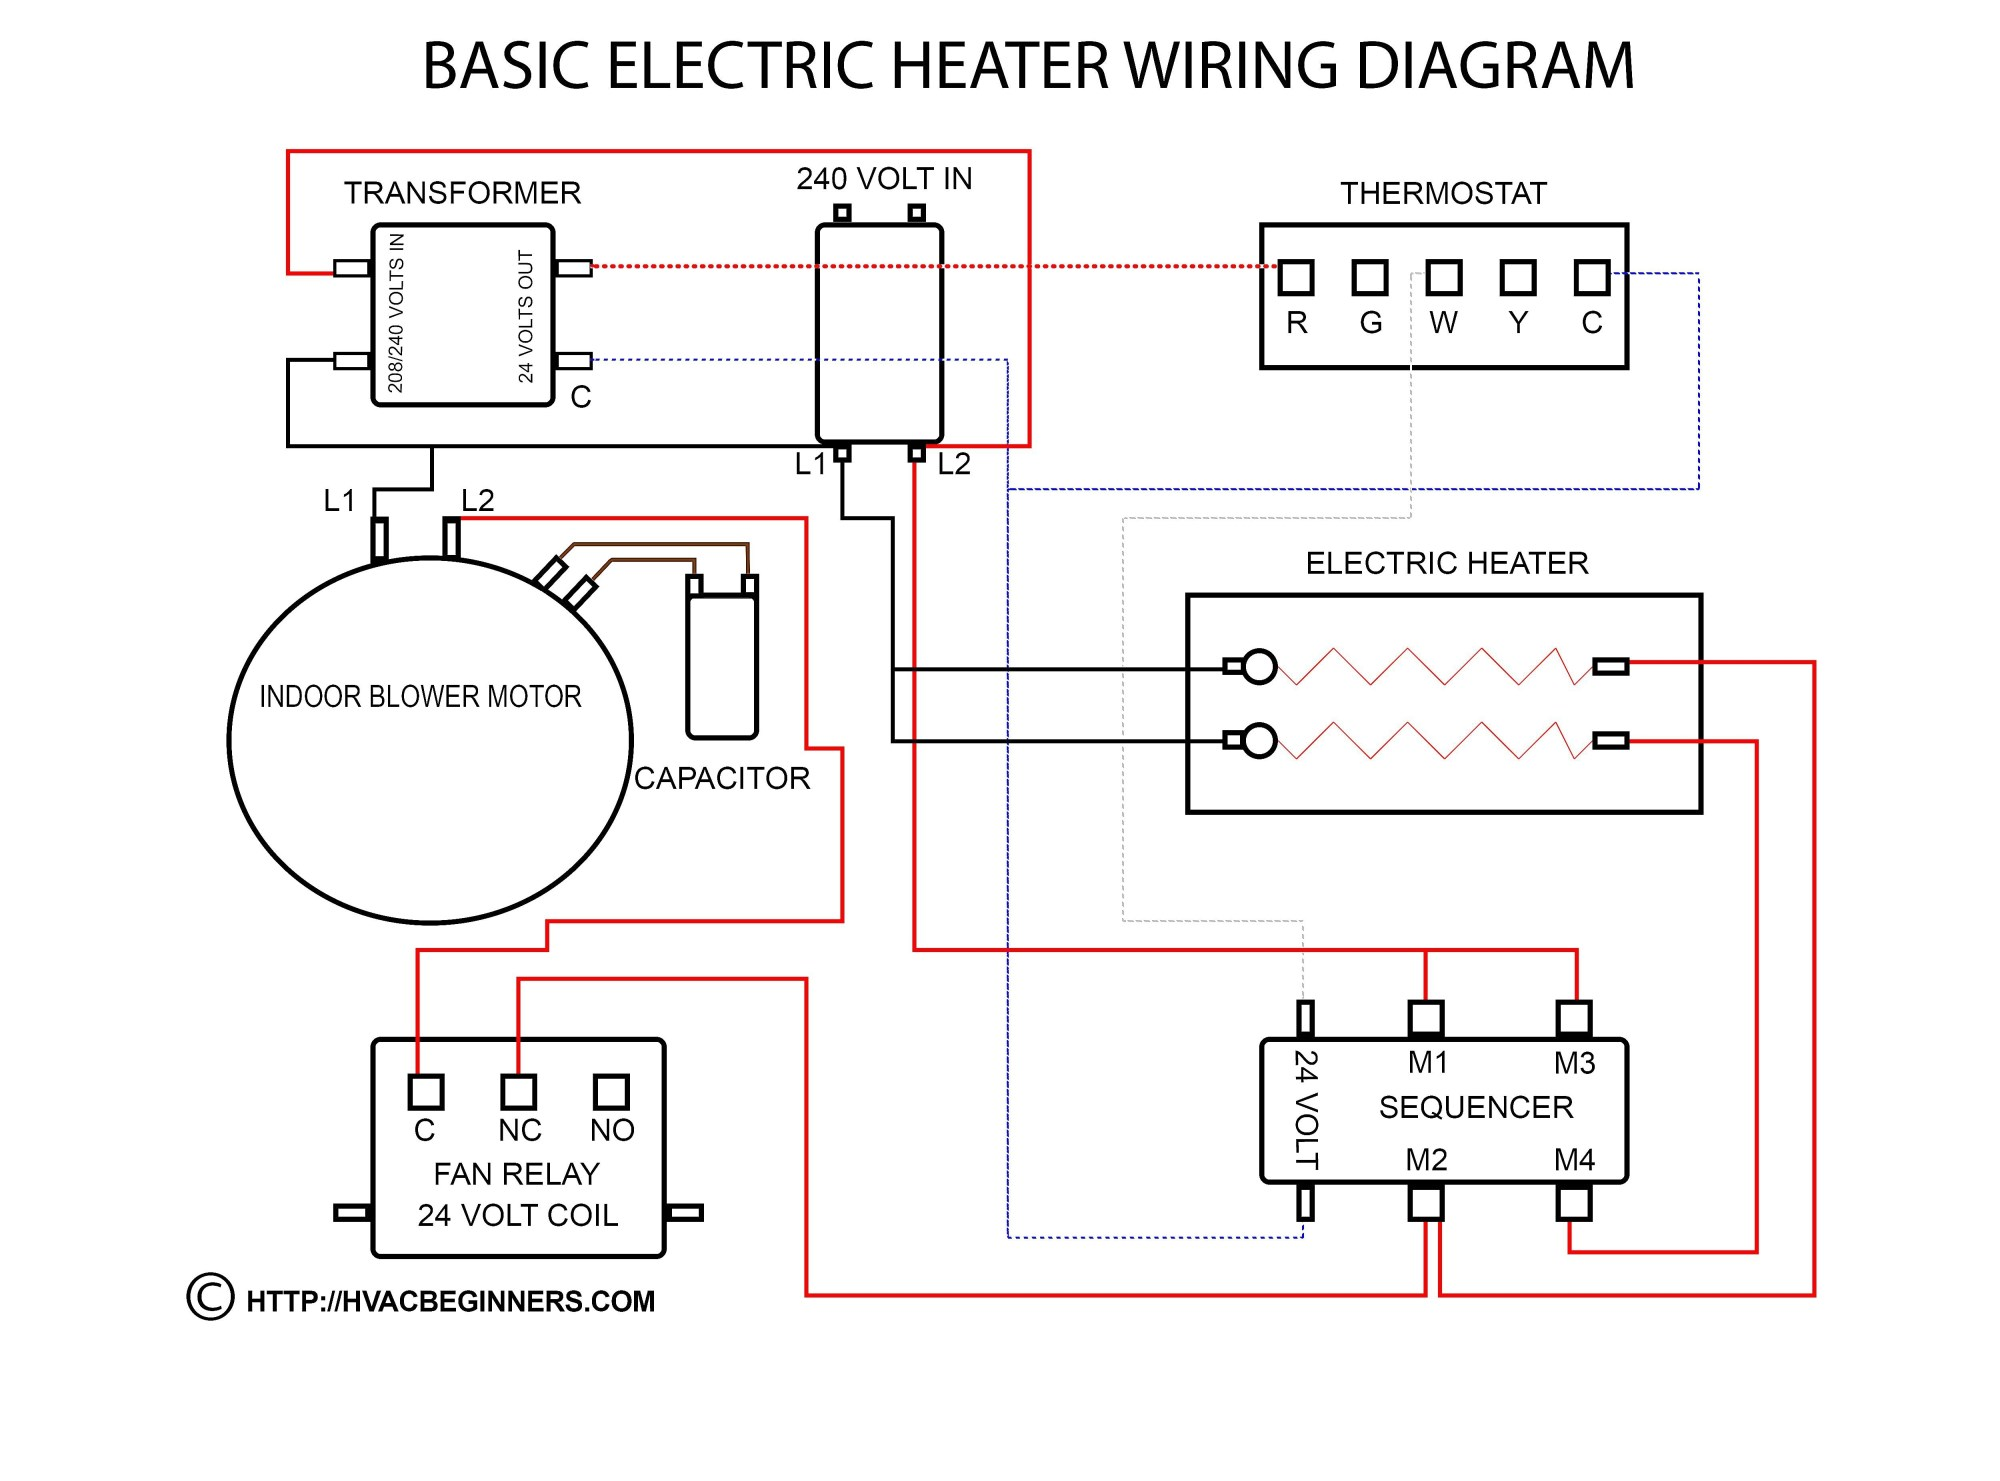 hight resolution of electric furnace fan relay wiring diagram old gas furnace relay diagram free wiring diagram schematic